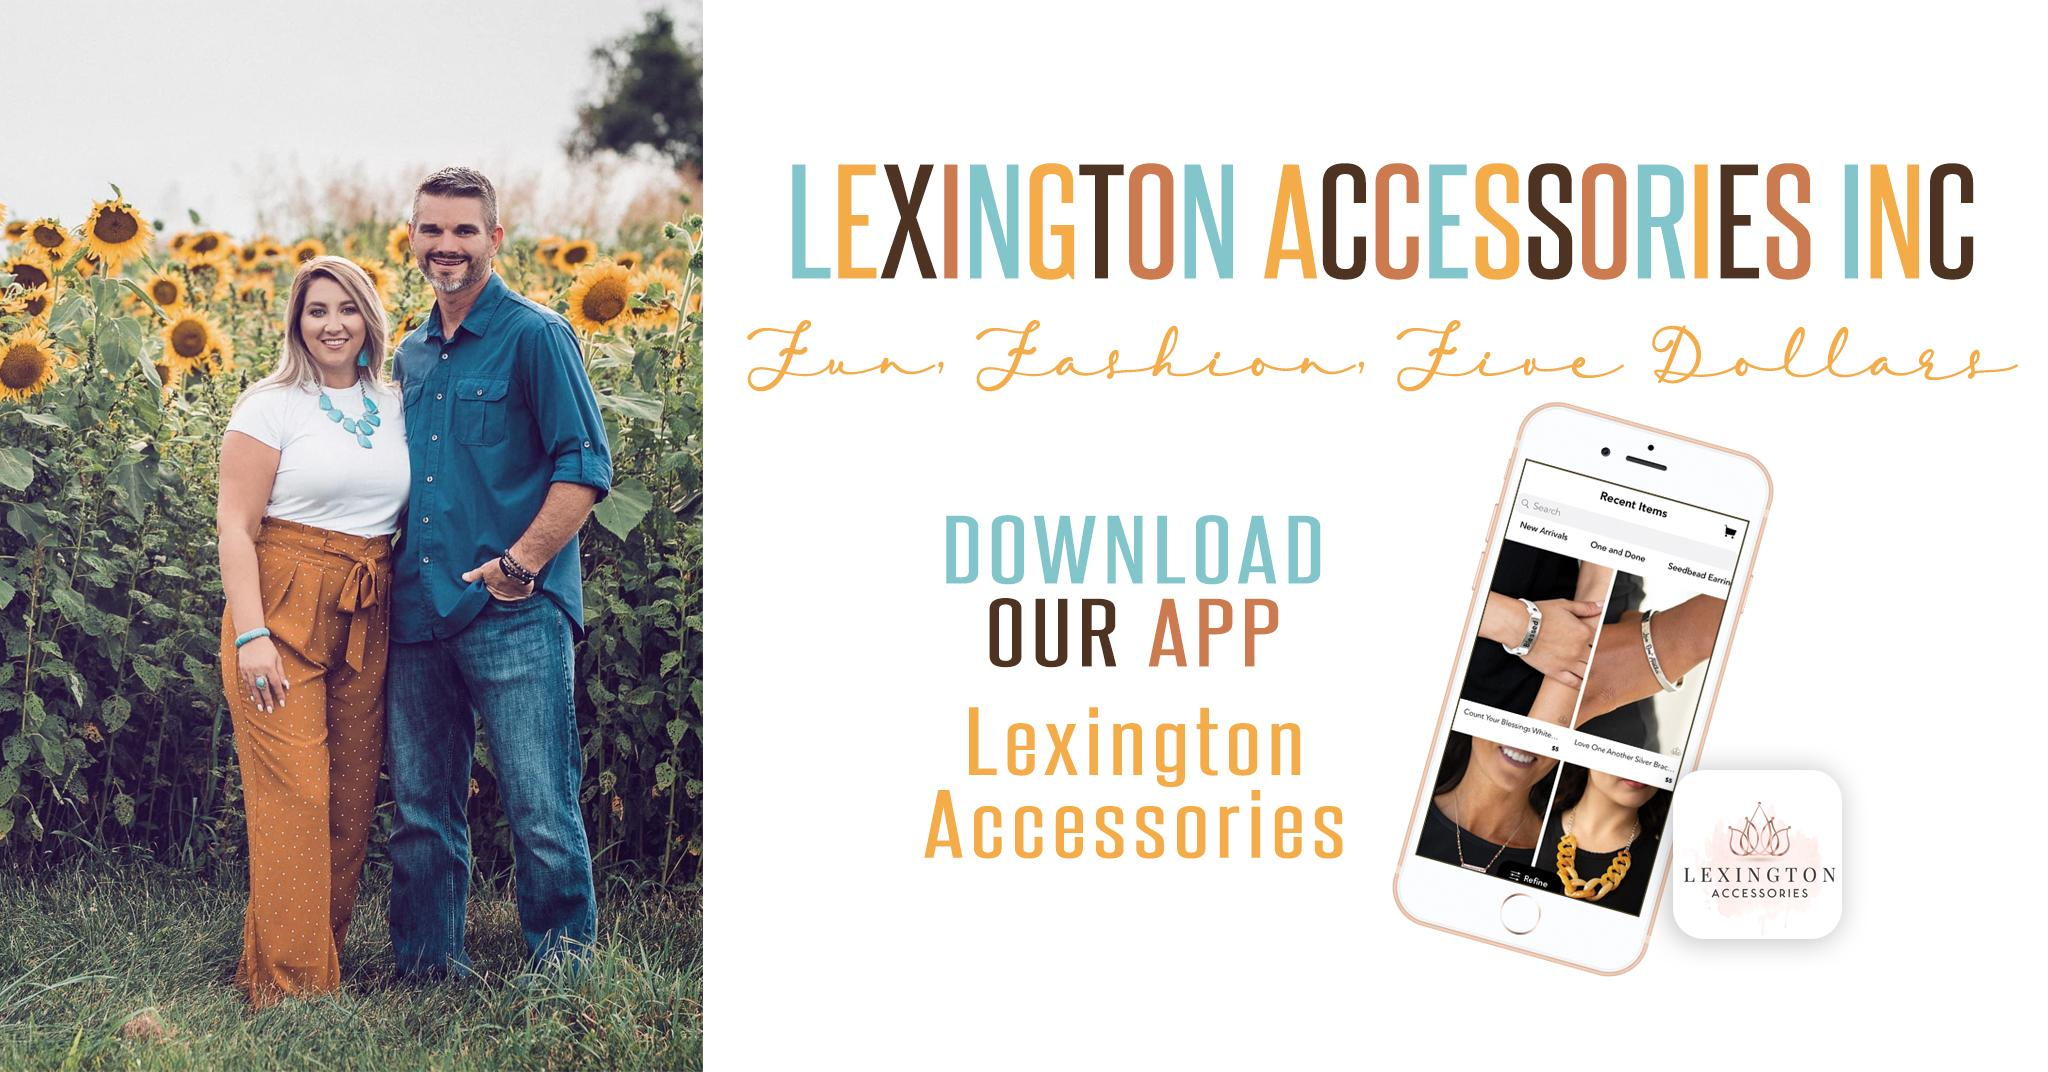 Welcome to Lexington Accessories!